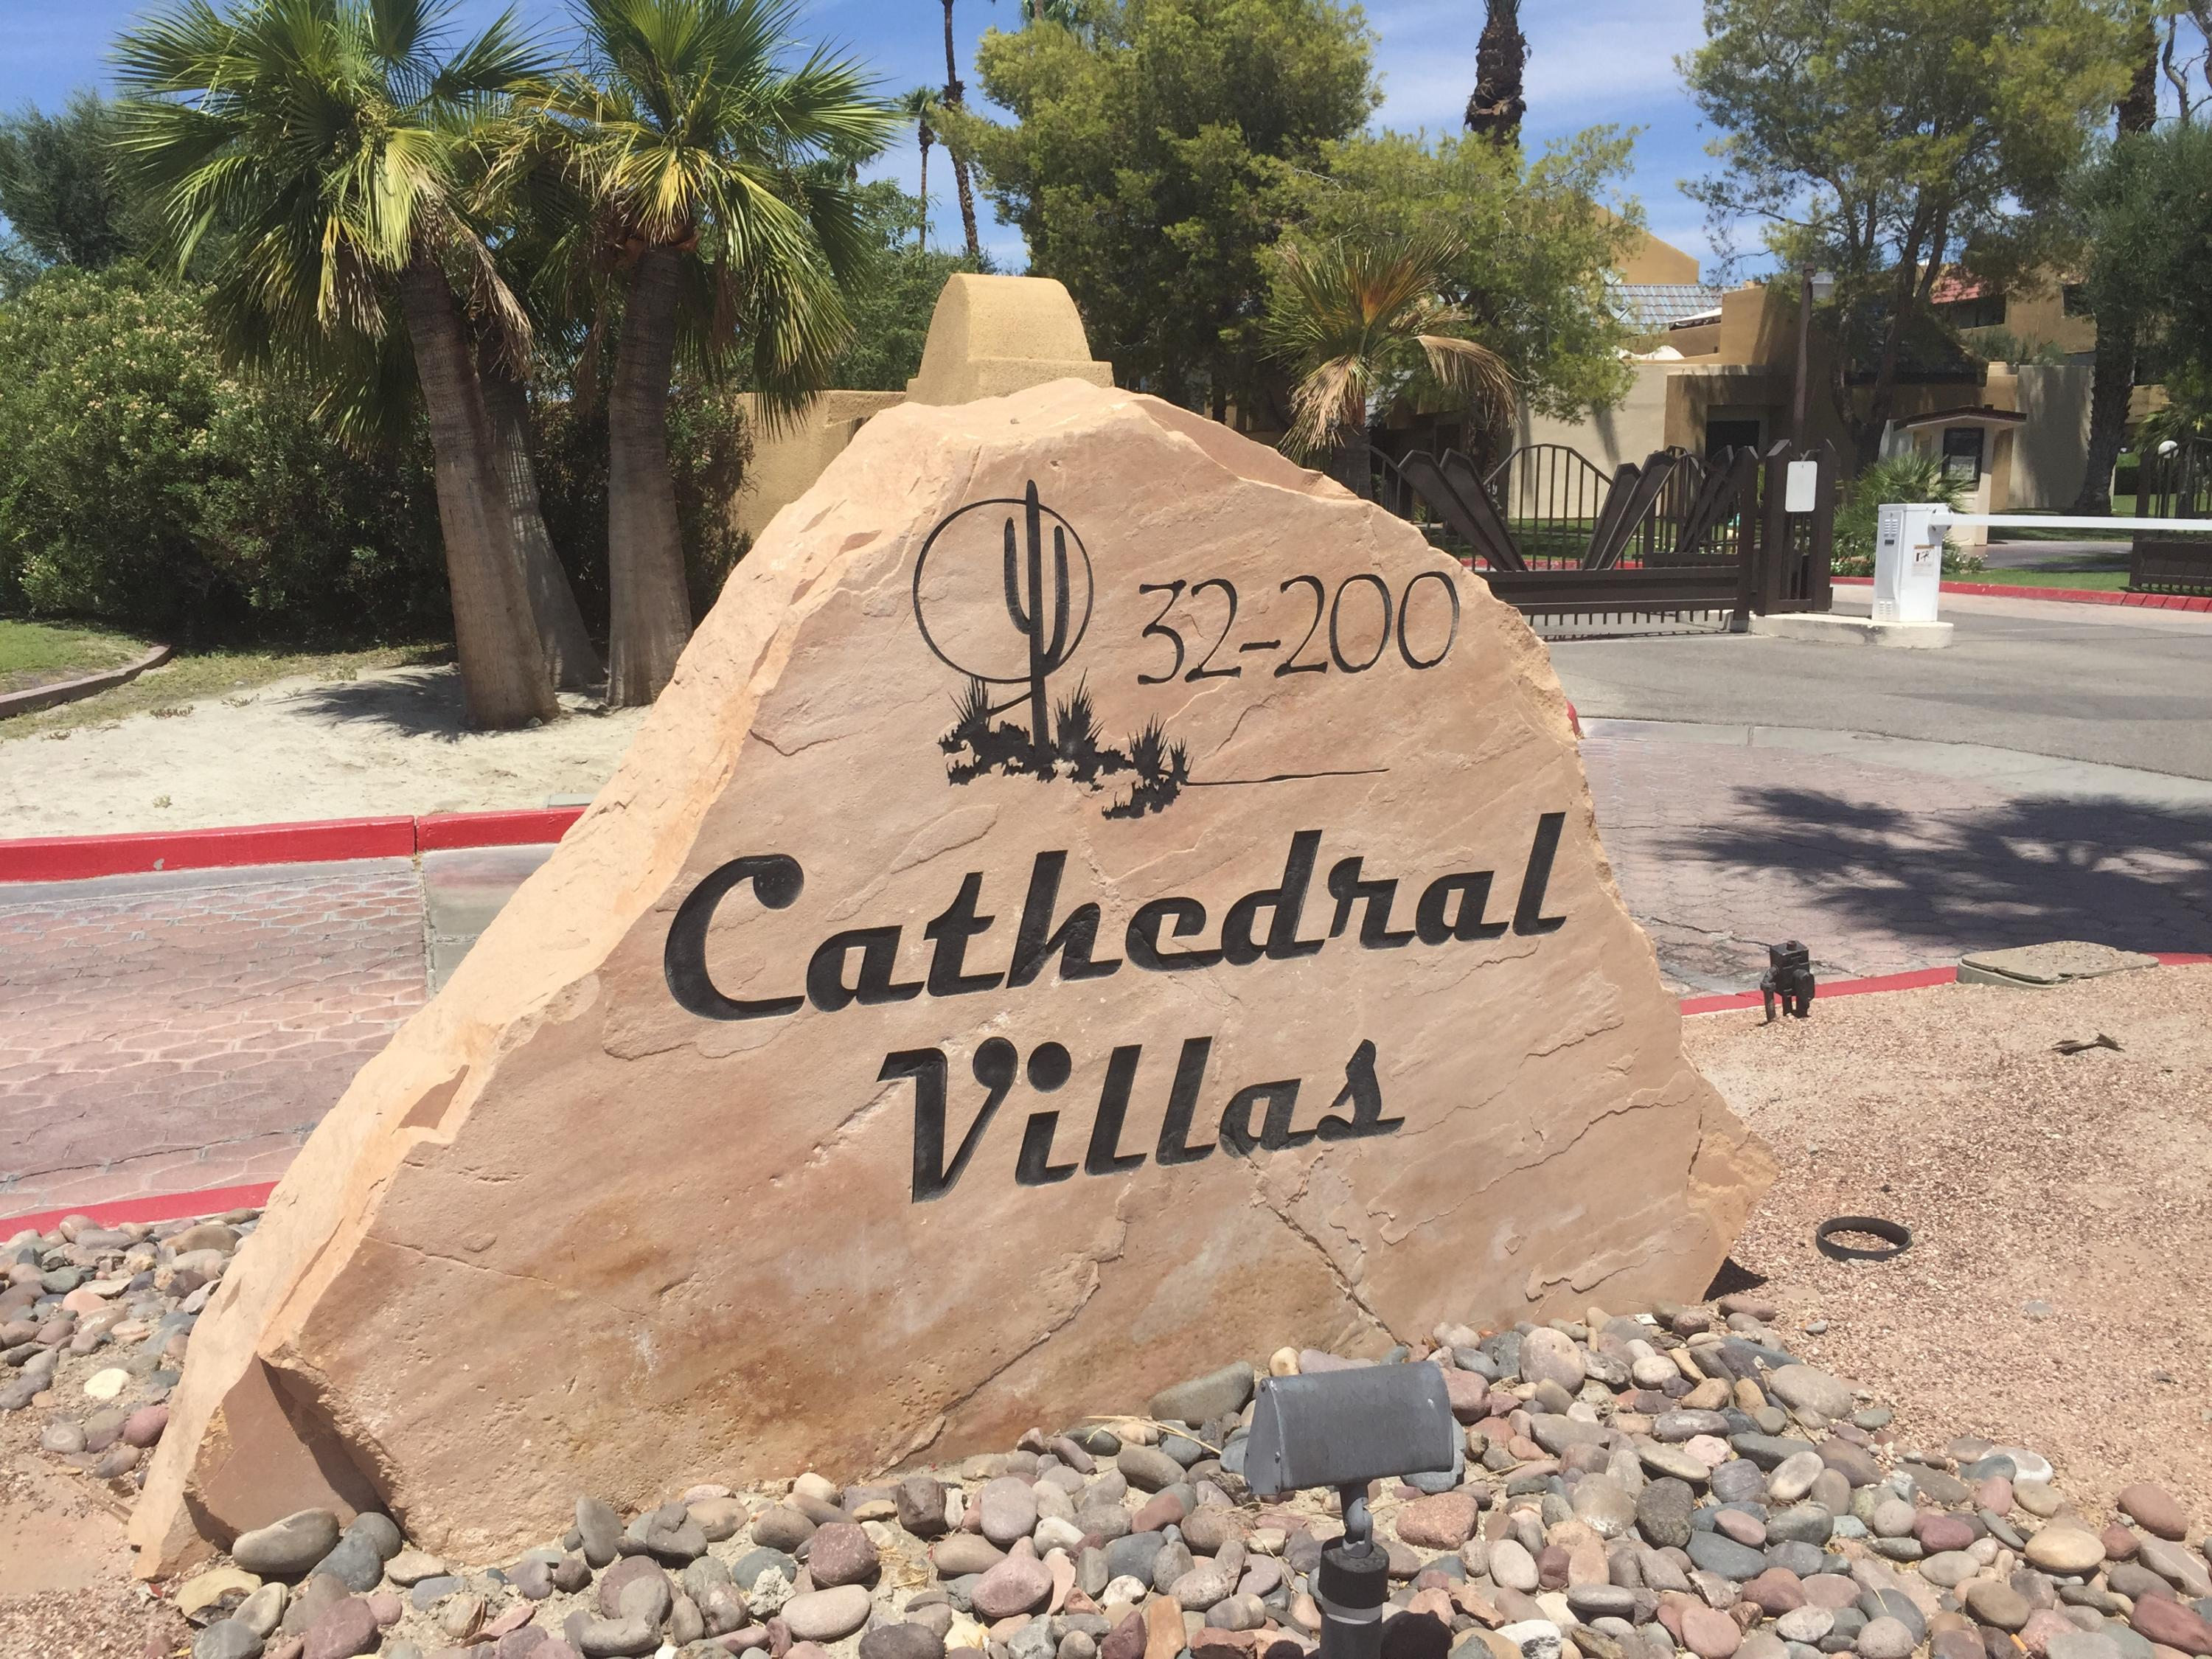 32200 Cathedral Canyon Drive, Cathedral City, California 92234, 3 Bedrooms Bedrooms, ,2 BathroomsBathrooms,Residential,Sold,32200 Cathedral Canyon Drive,219030529